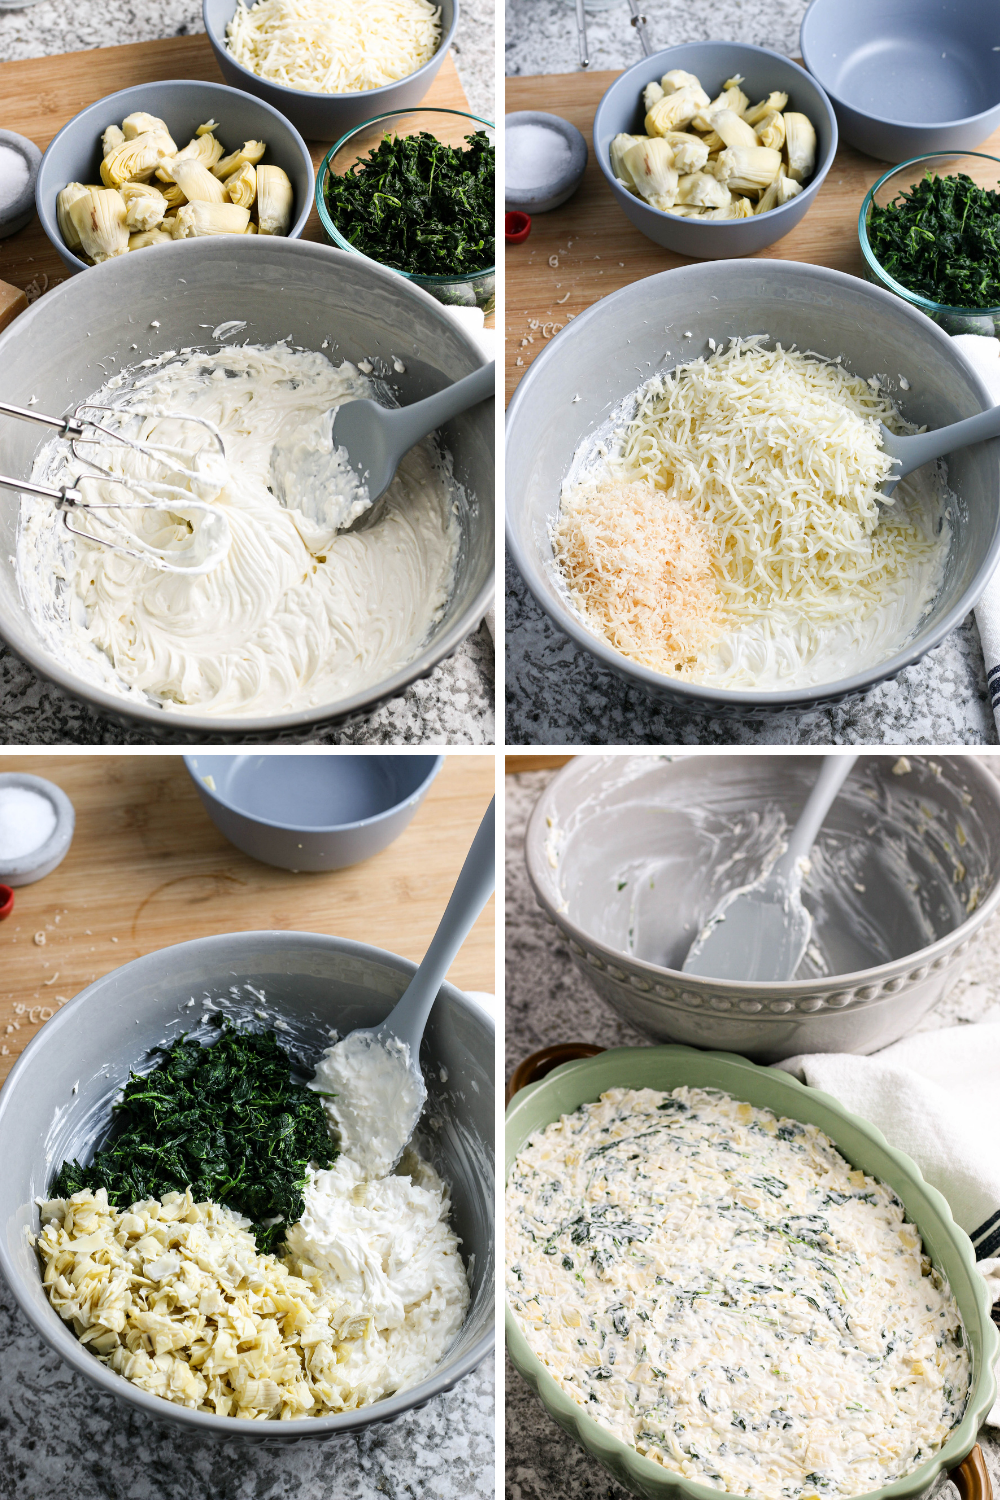 How to make Spinach artichoke dip.